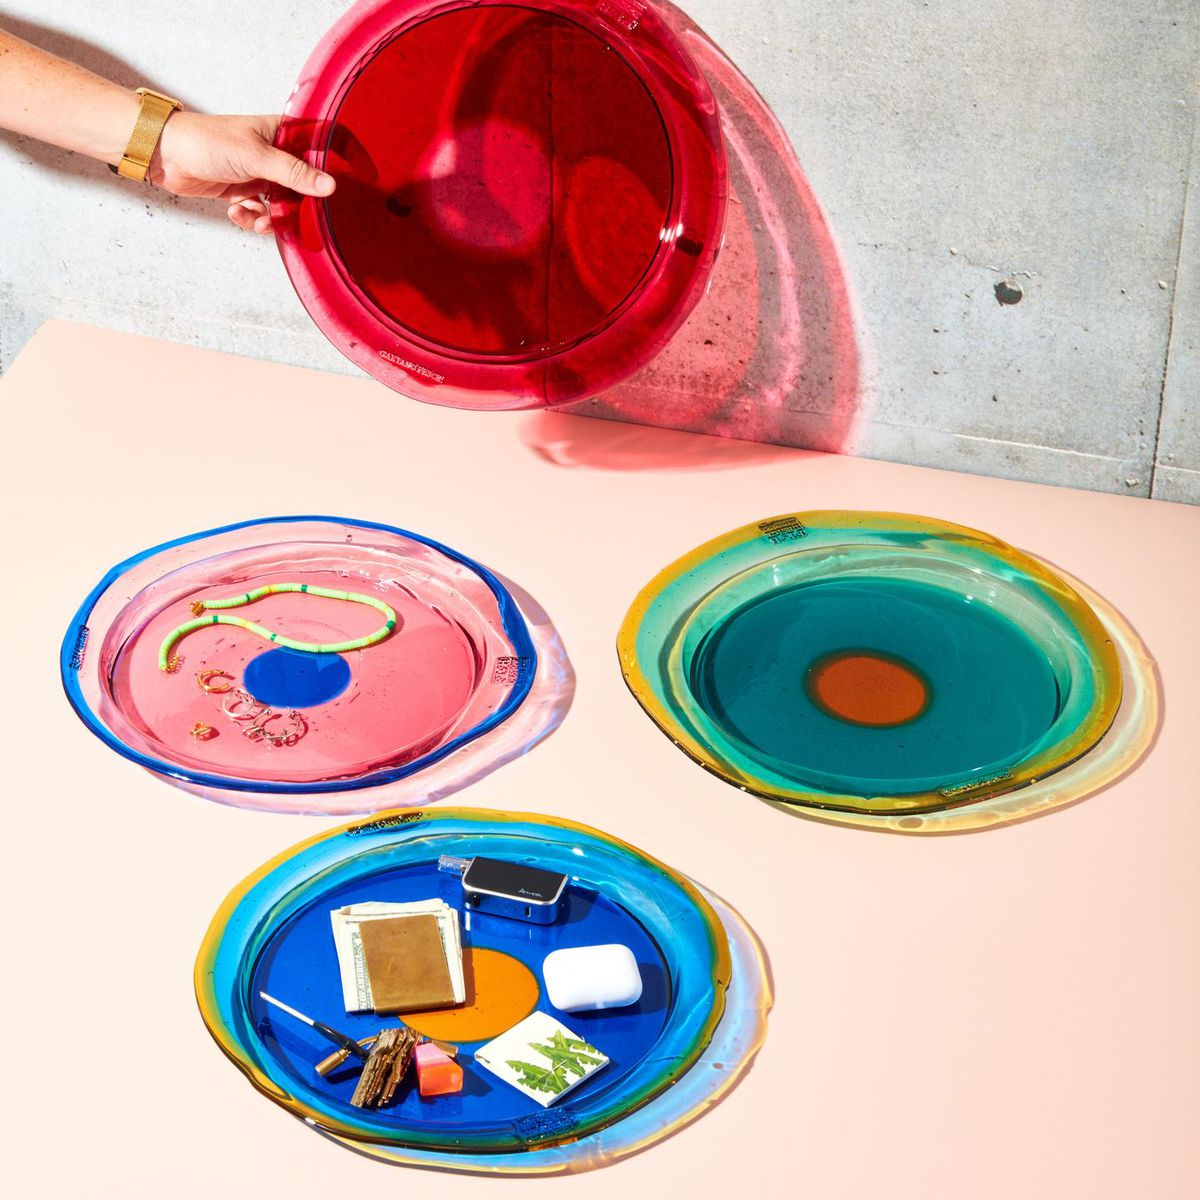 Four bright glass plates in the colors red, pink, green, and blue are positioned on top of a pink table.